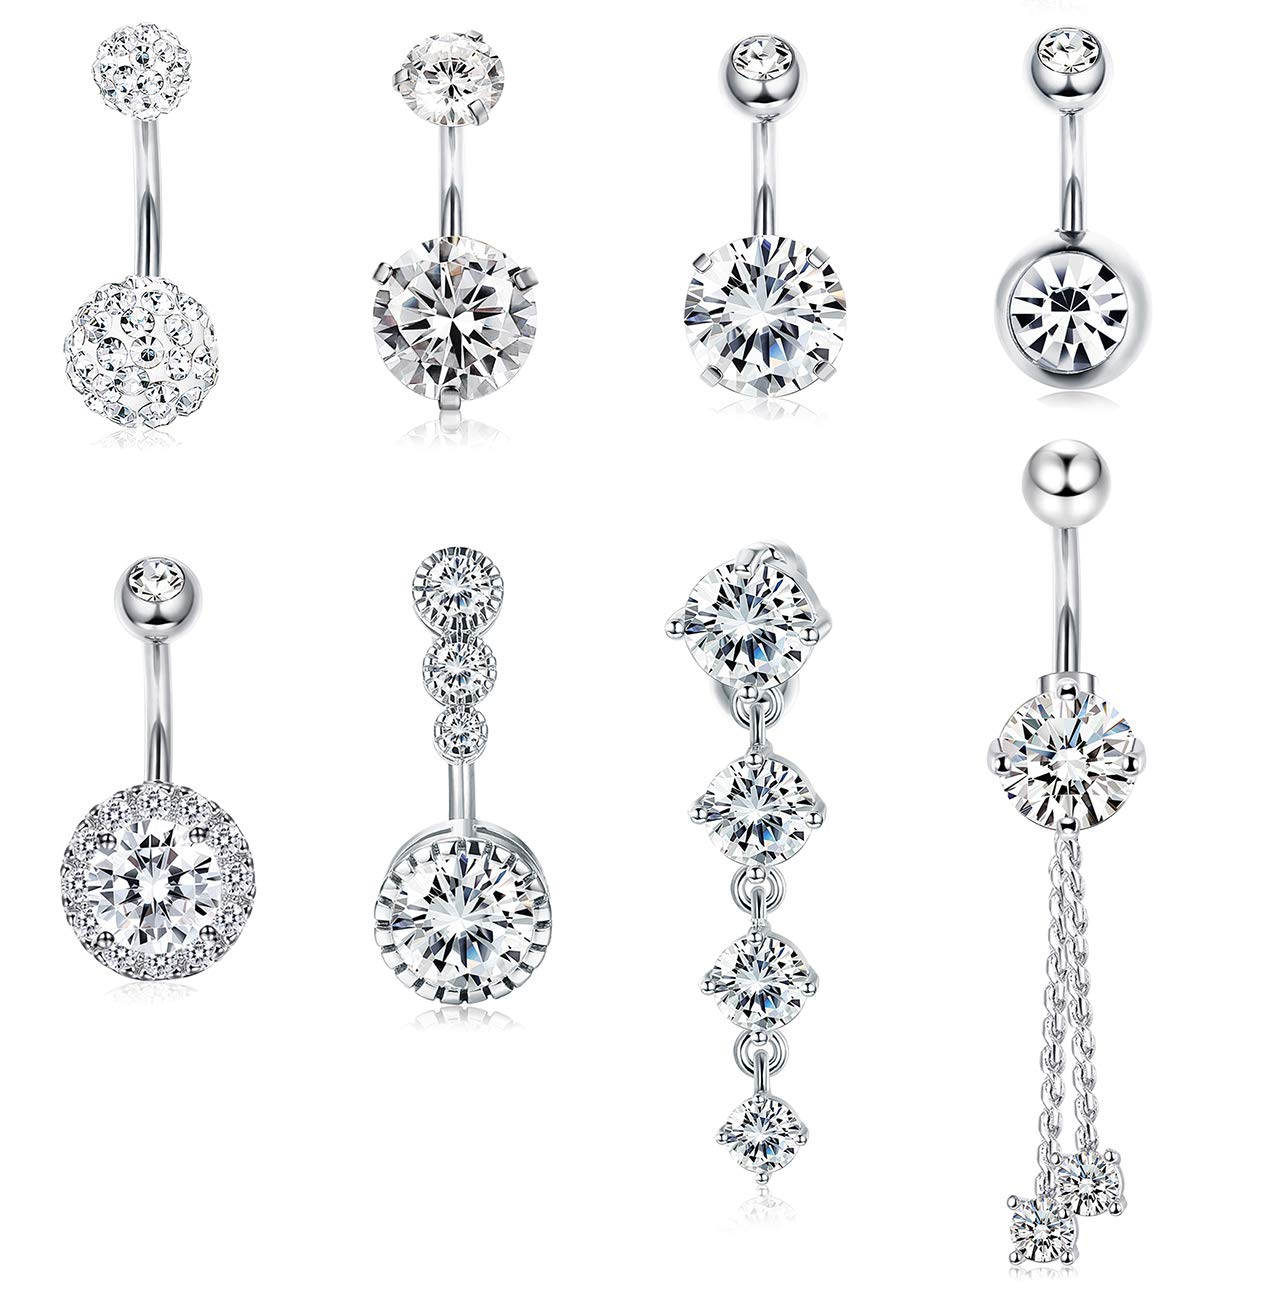 Udalyn 6-8 Pcs 14G Belly Burron Rings Stainless Steel Navel Rings for Women Body Piercing Jewery Set with Waist Chain by Udalyn